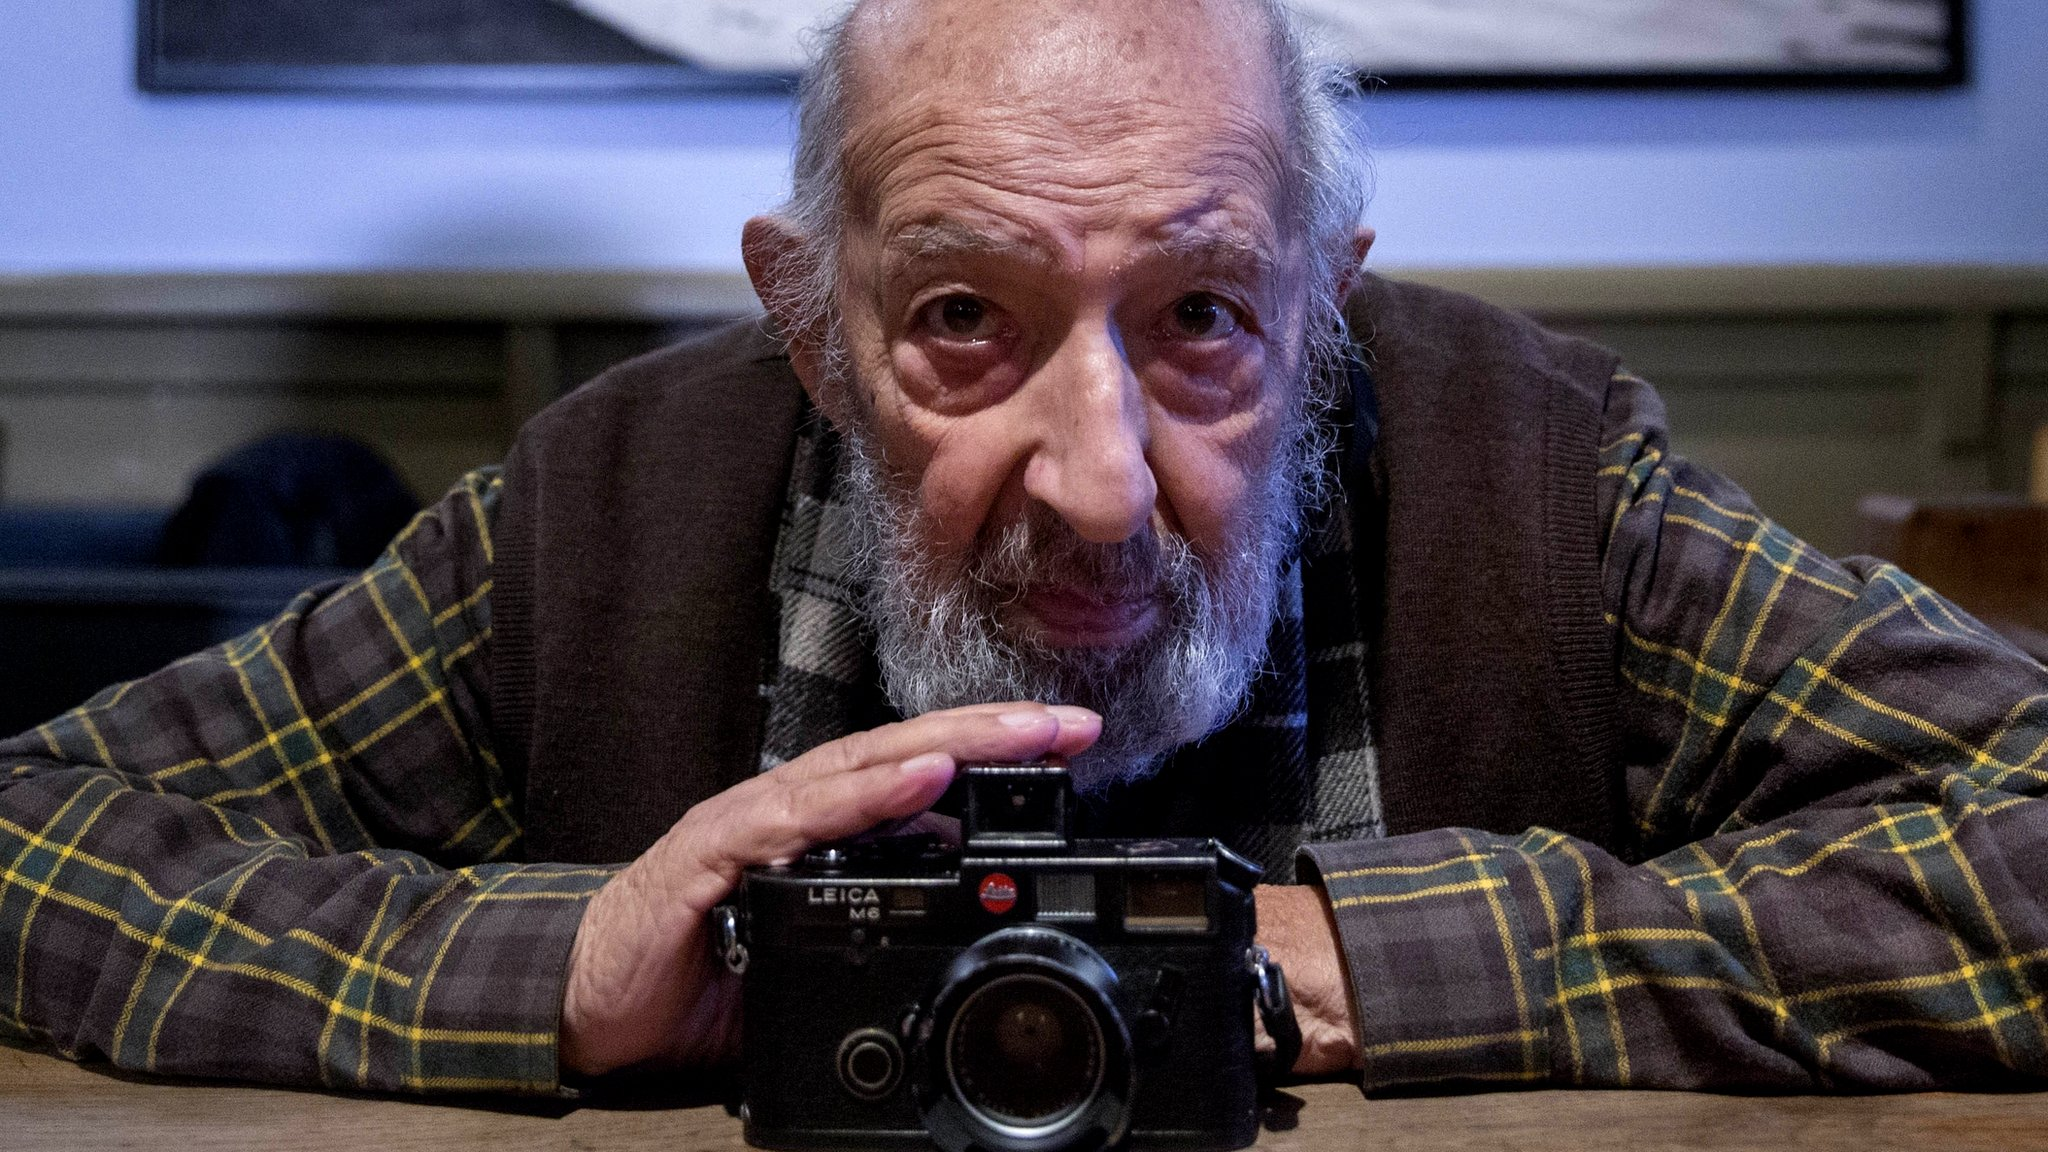 In pictures: 'Eye of Istanbul' photographer Ara Guler dies at 90